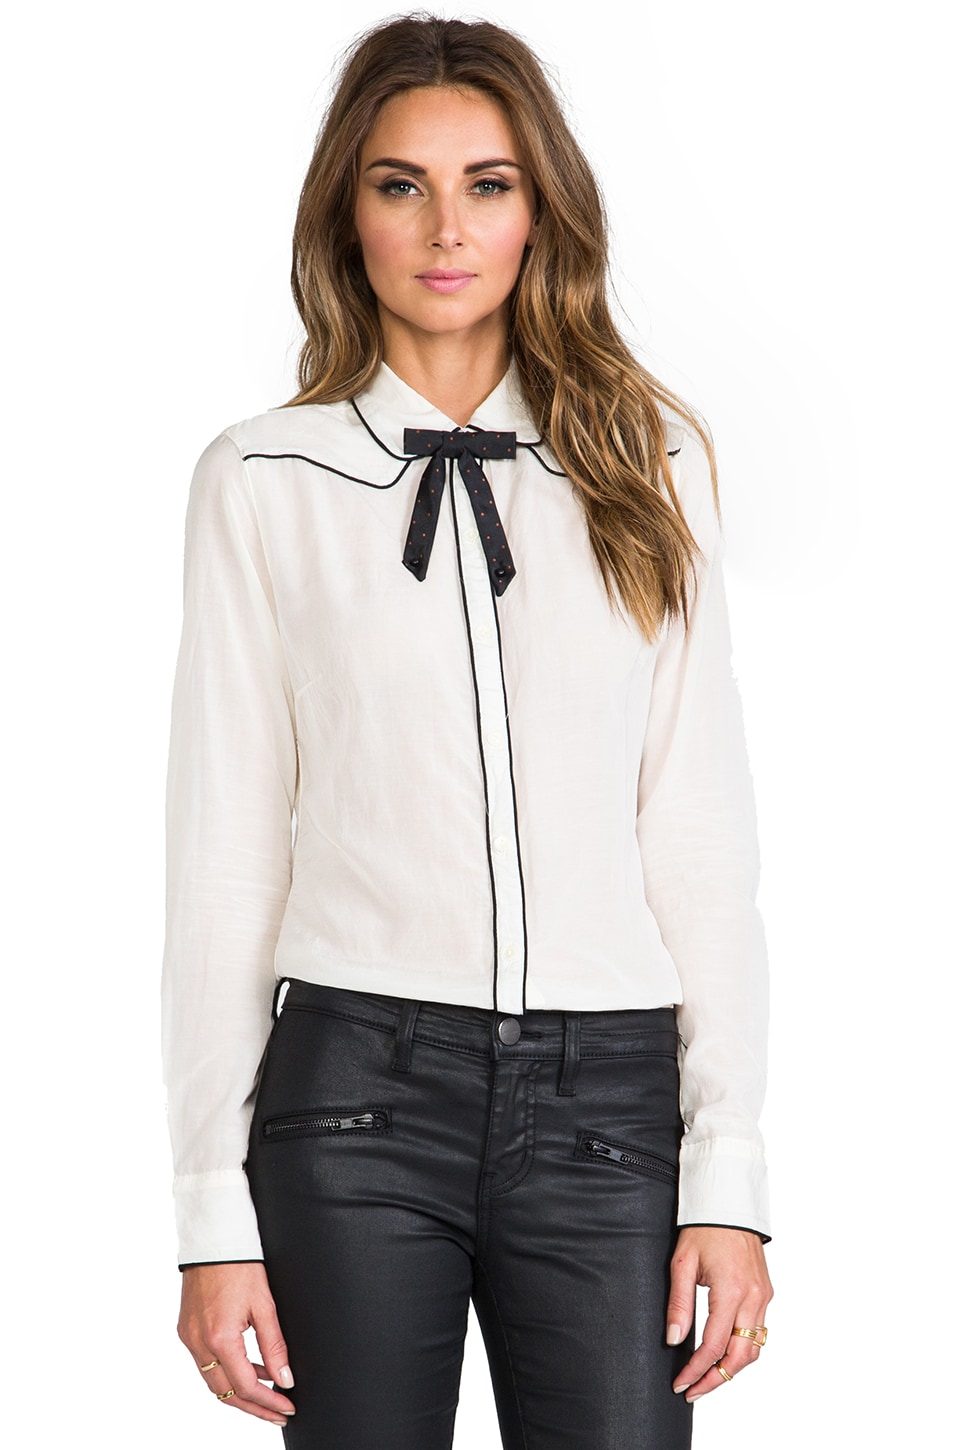 Maison Scotch Long Sleeve Blouse with Bow in Off White